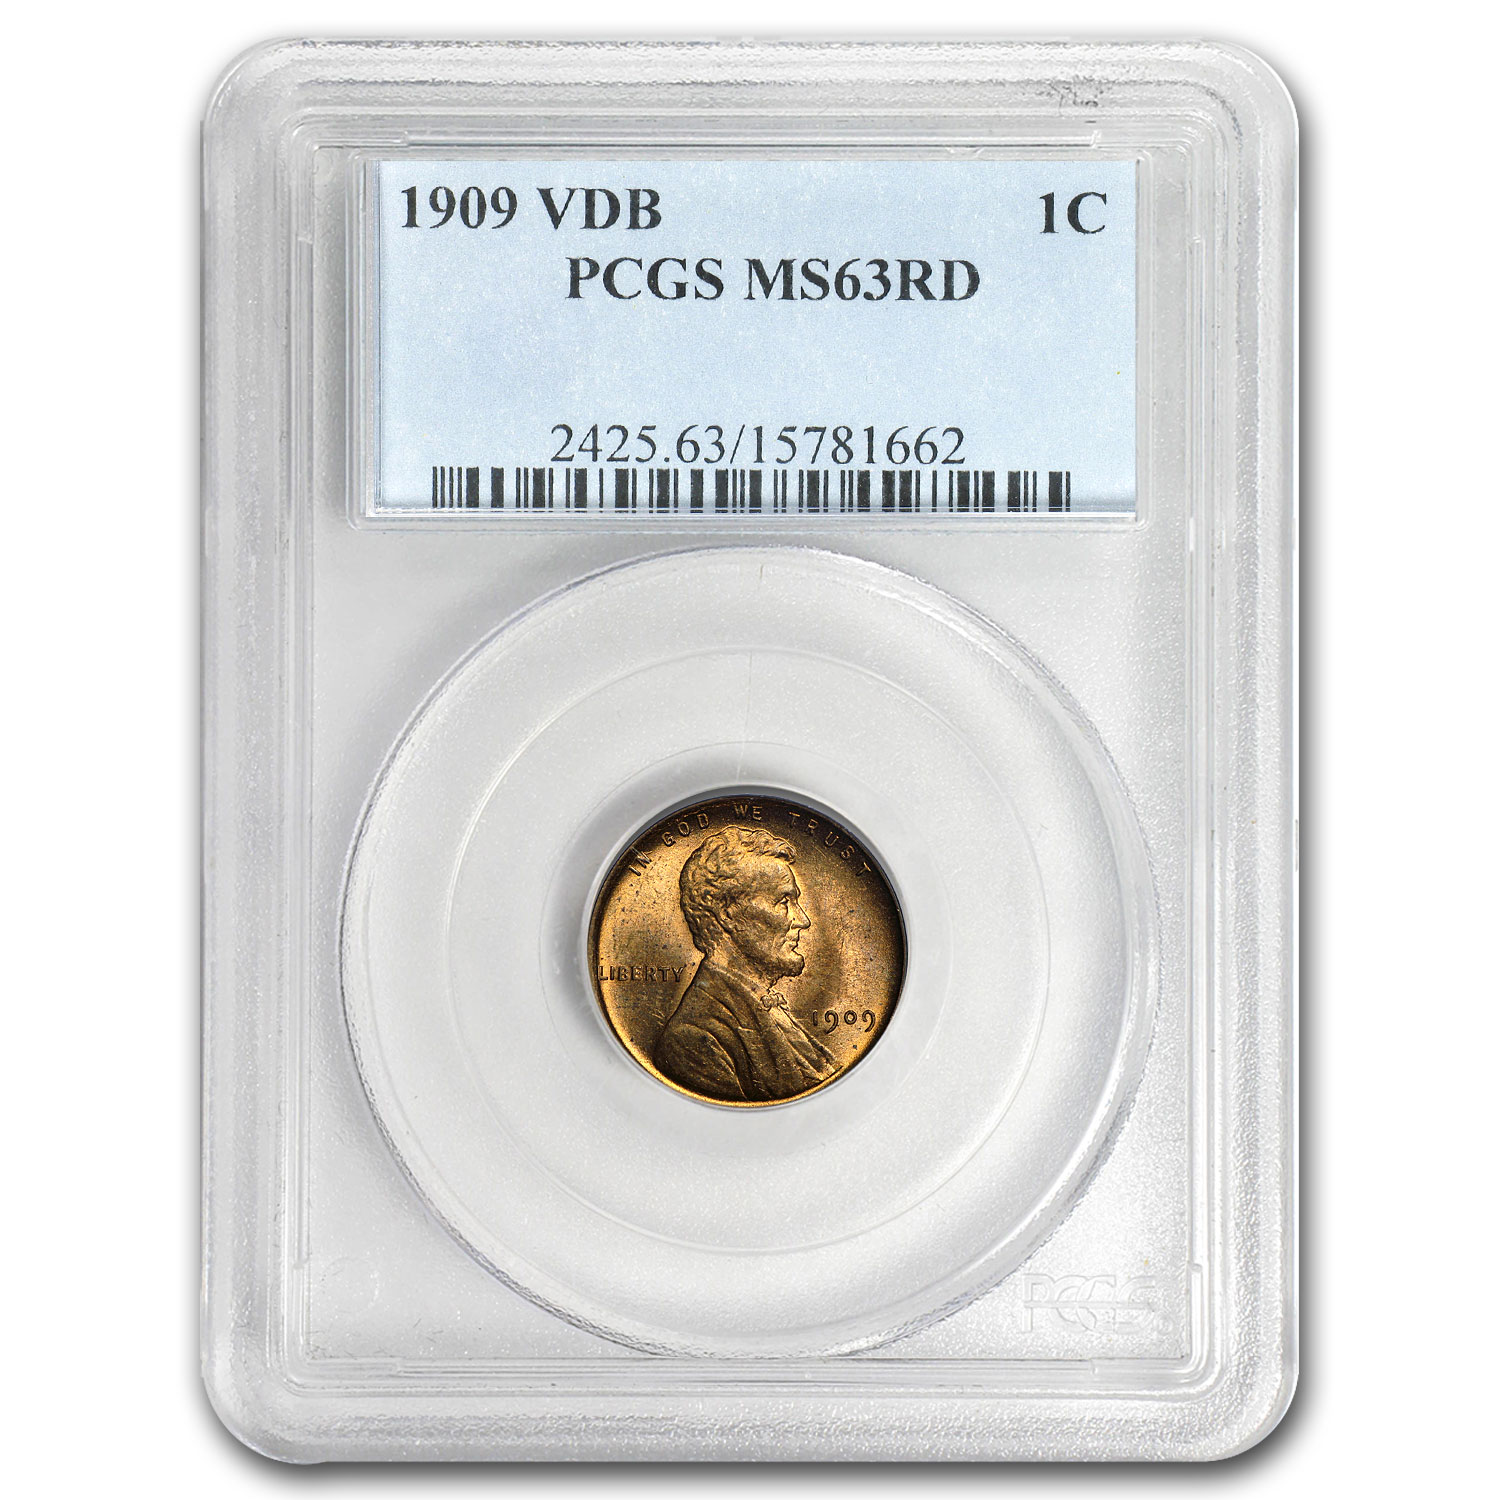 1909 VDB Lincoln Cent MS-63 PCGS (Red)